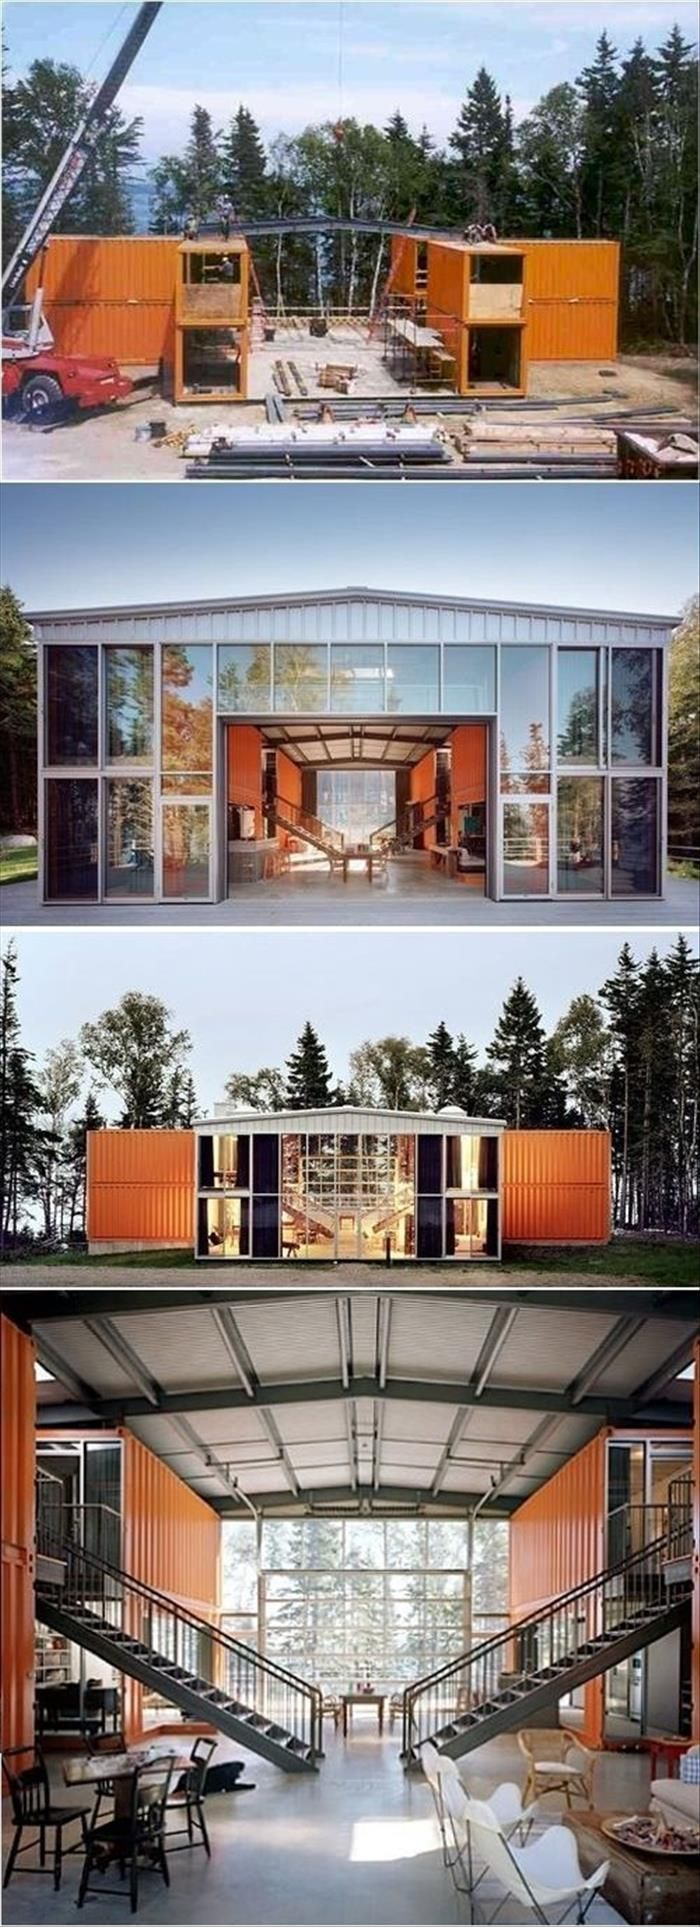 Shipping Container Homes That Will Blow Your Mind 15 Pics Home